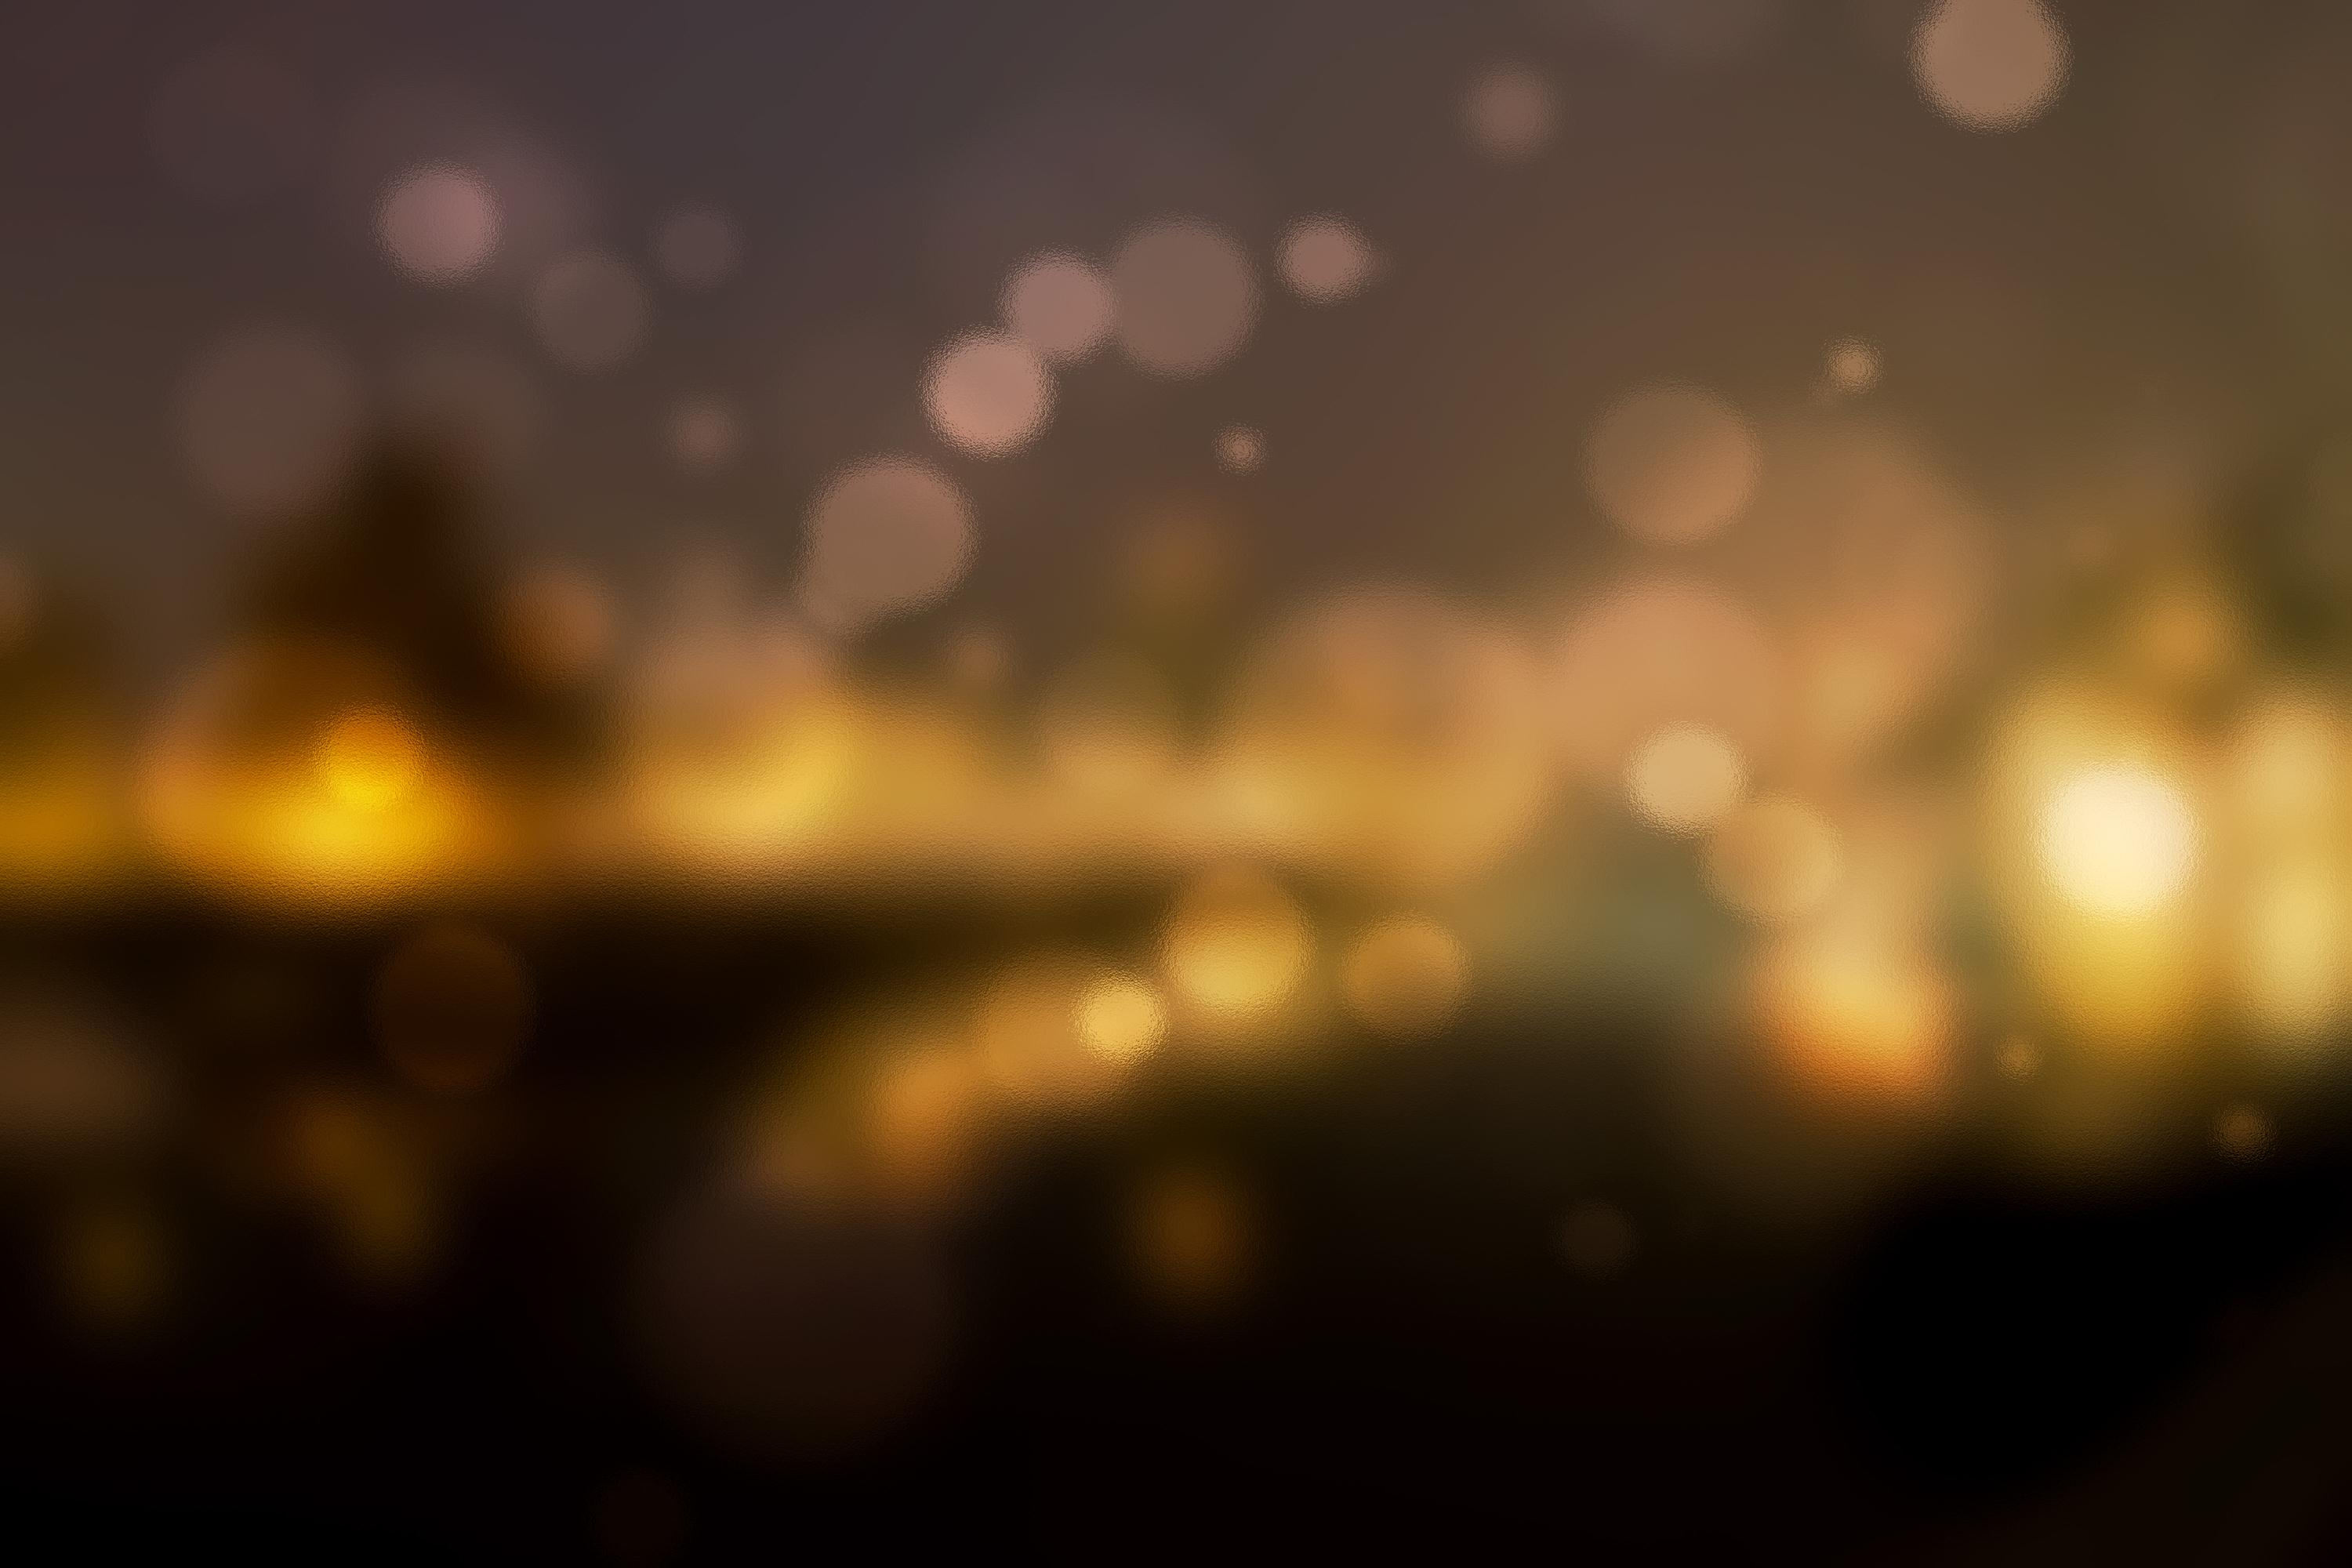 Free download Download Bokeh Backgrounds HD Wallpapers [3000x2000